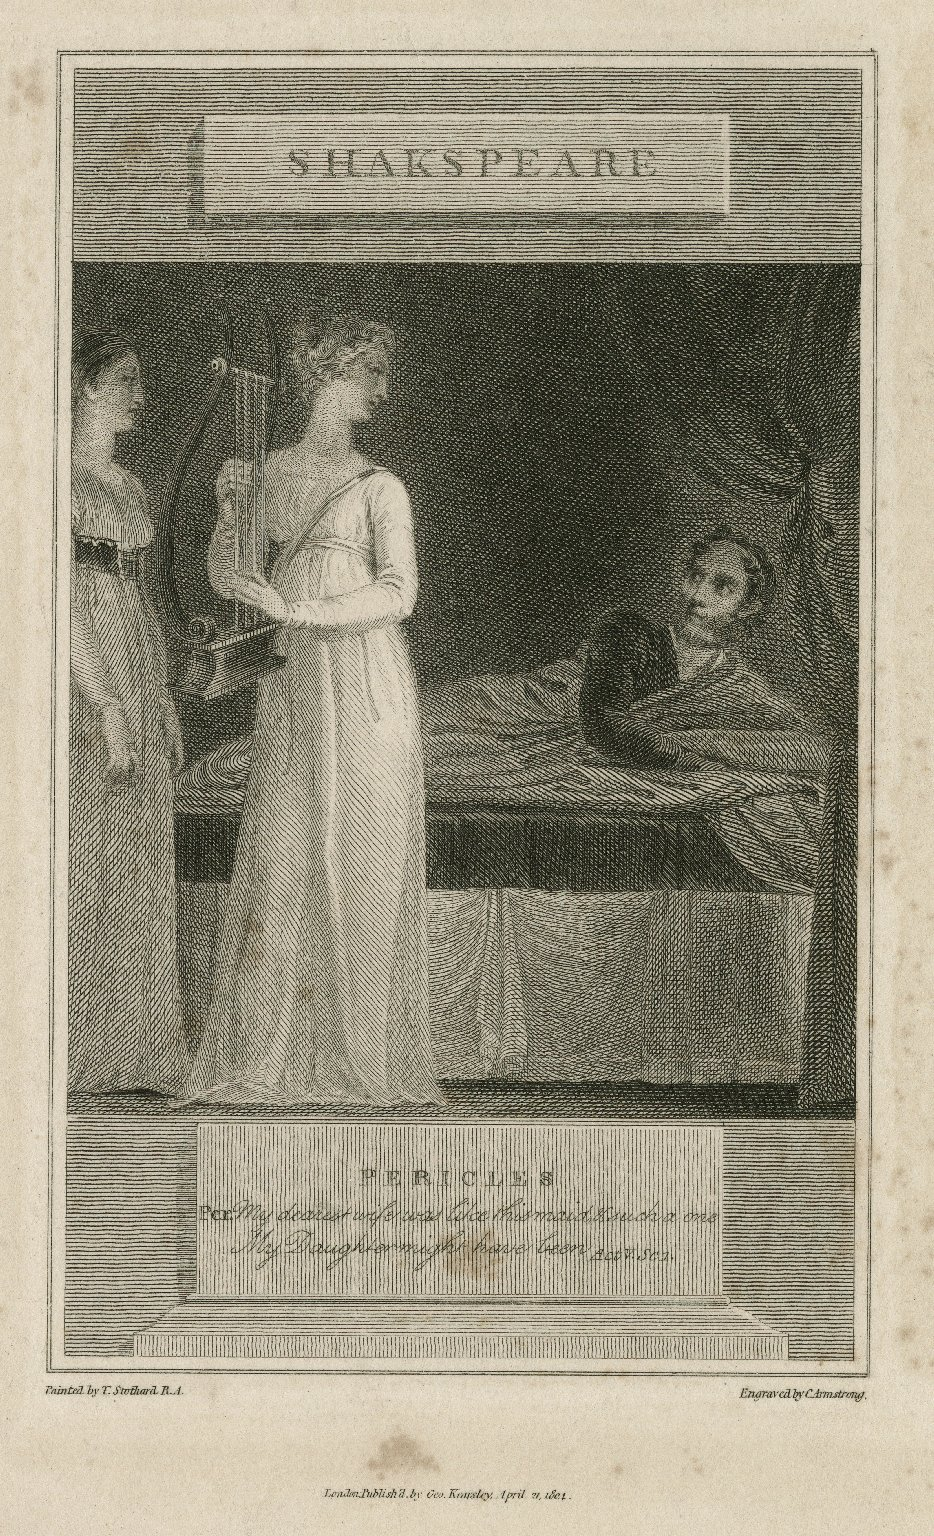 Pericles, act V, sc. 1 [graphic] / painted by T. Stothard, R.A. ; engraved by C. Armstrong.